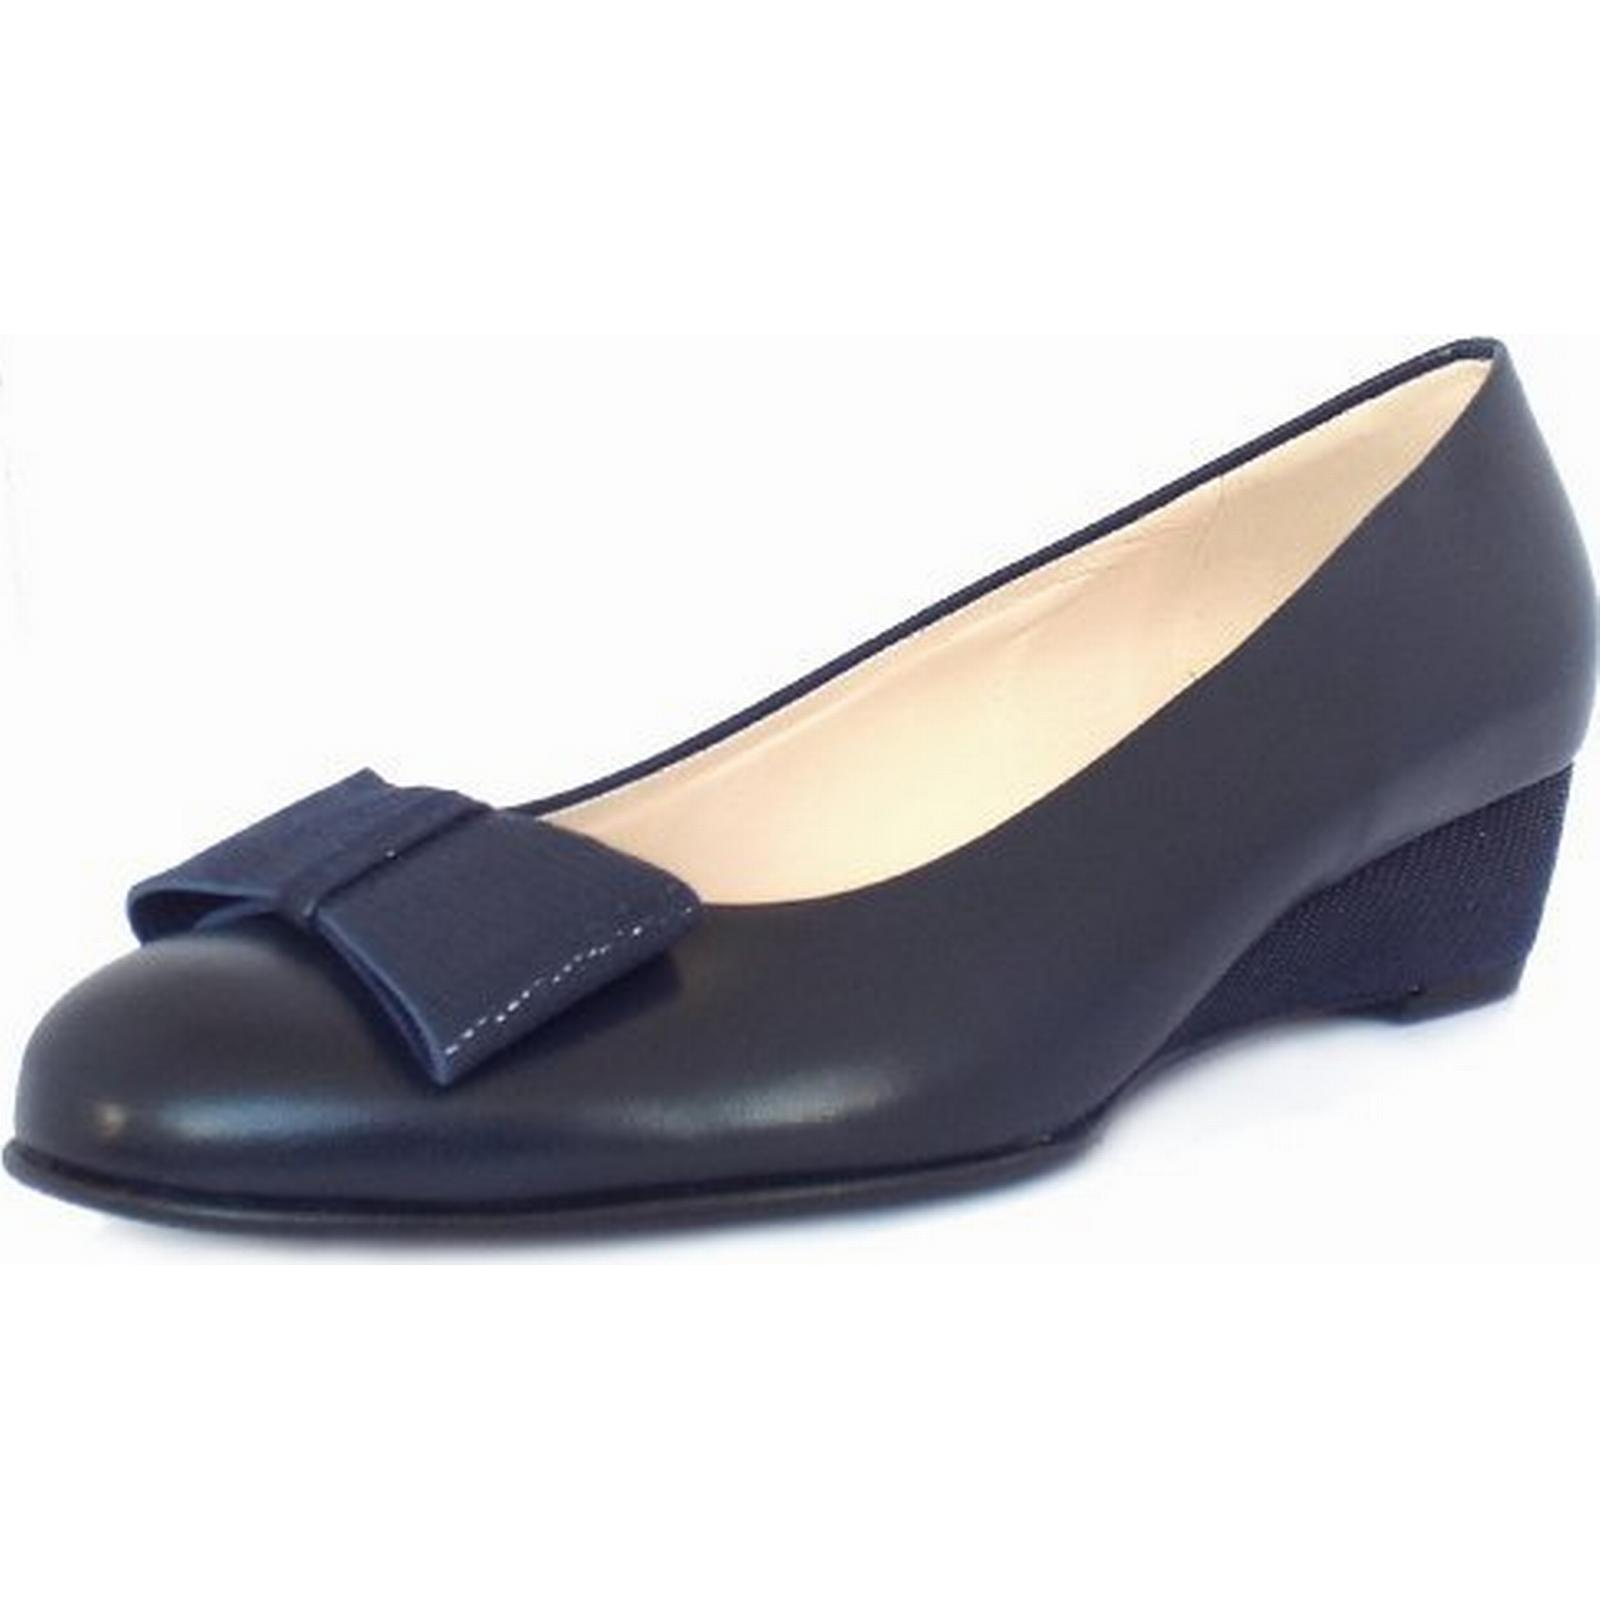 Peter Kaiser JIMINI PETER KAISER LADIES Size: SHOES Size: LADIES 5, Colour: NAVY 5fb179